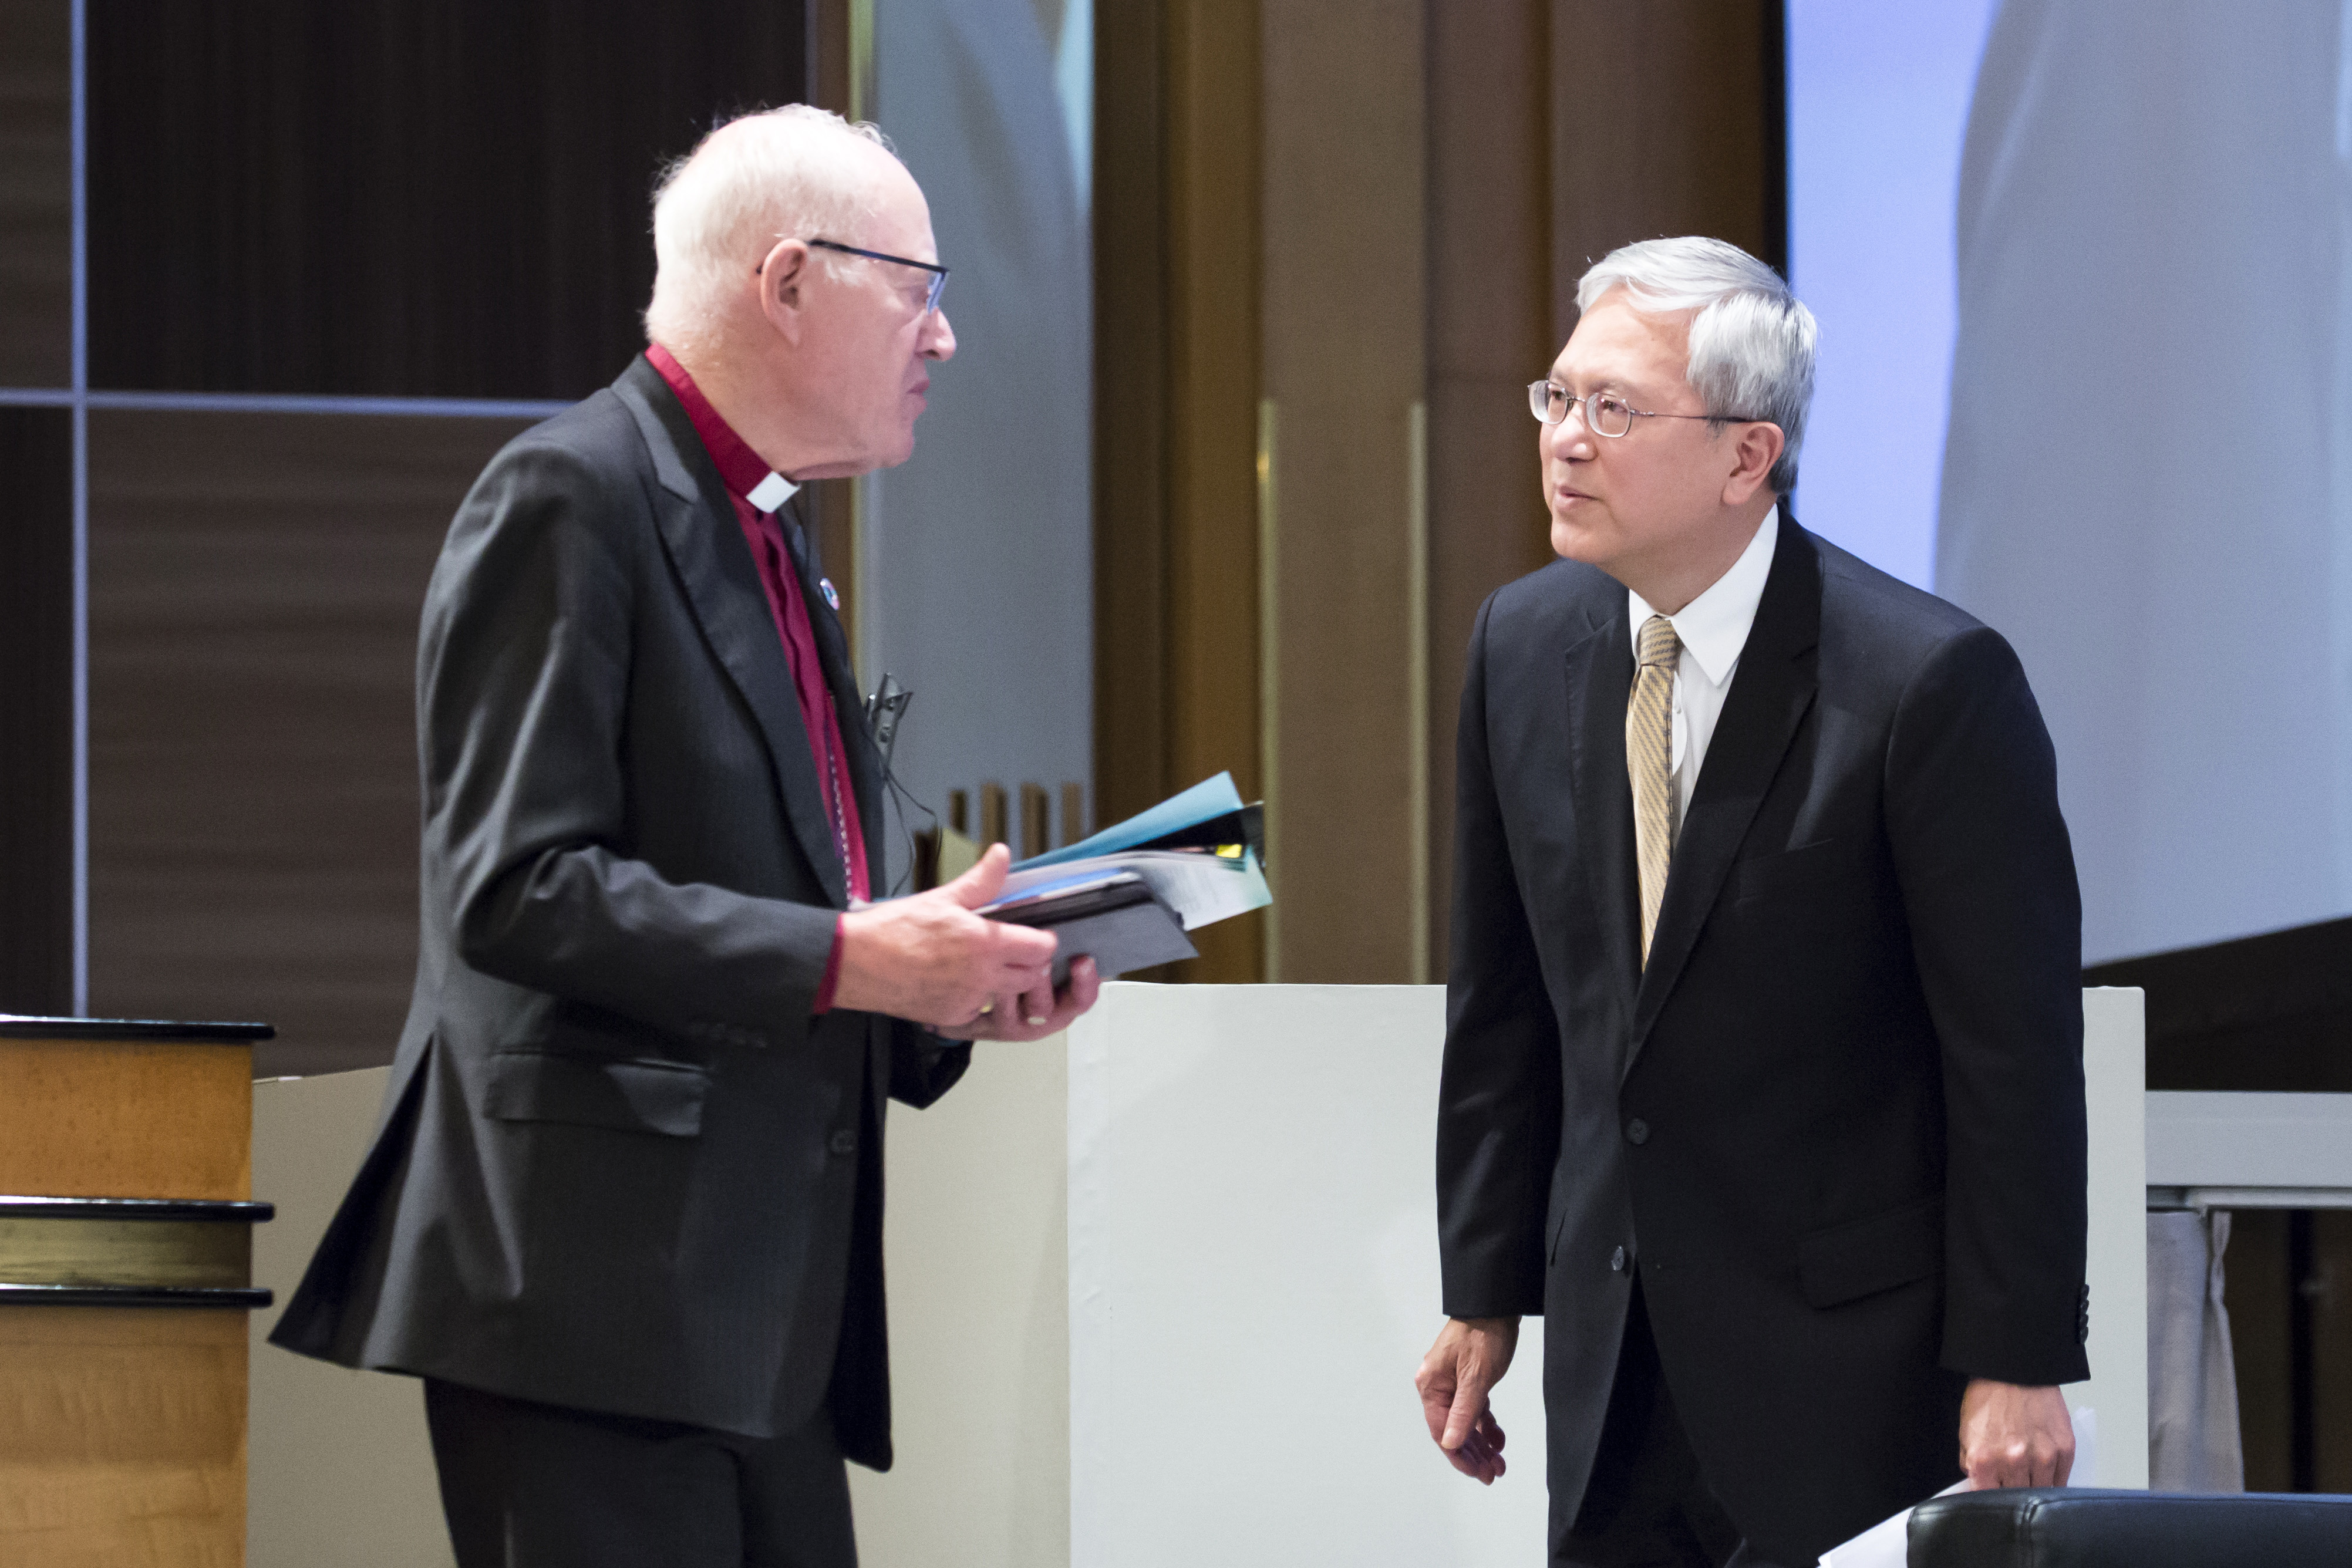 Elder Gerrit W. Gong of the Quorum of the Twelve Apostles of The Church of Jesus Christ of Latter-day Saints, right, speaks to Lord Carey of Clifton as he arrives for a session during the G20 Interfaith Forum in Chiba, Japan, on Saturday, June 8, 2019.